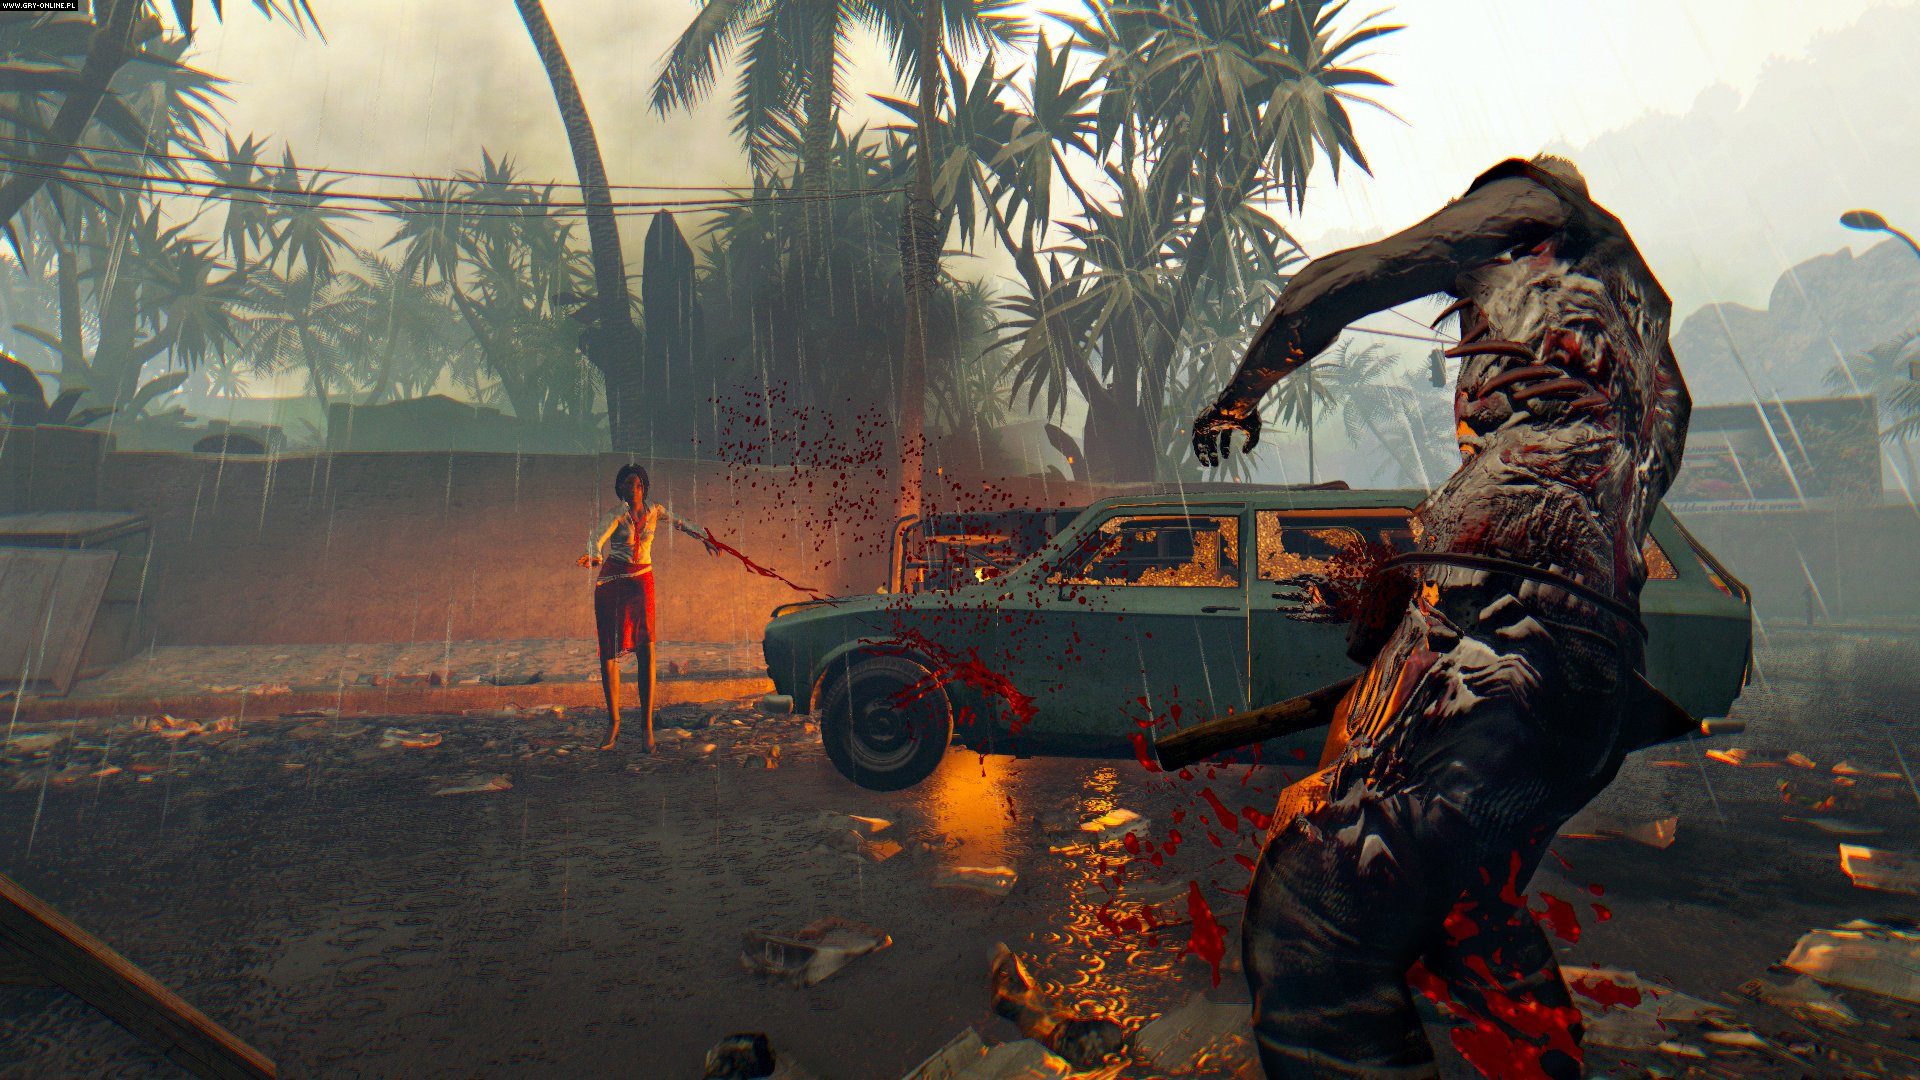 Dead Island: Definitive Collection PC, PS4, XONE Games Image 13/16, Techland, Deep Silver / Koch Media